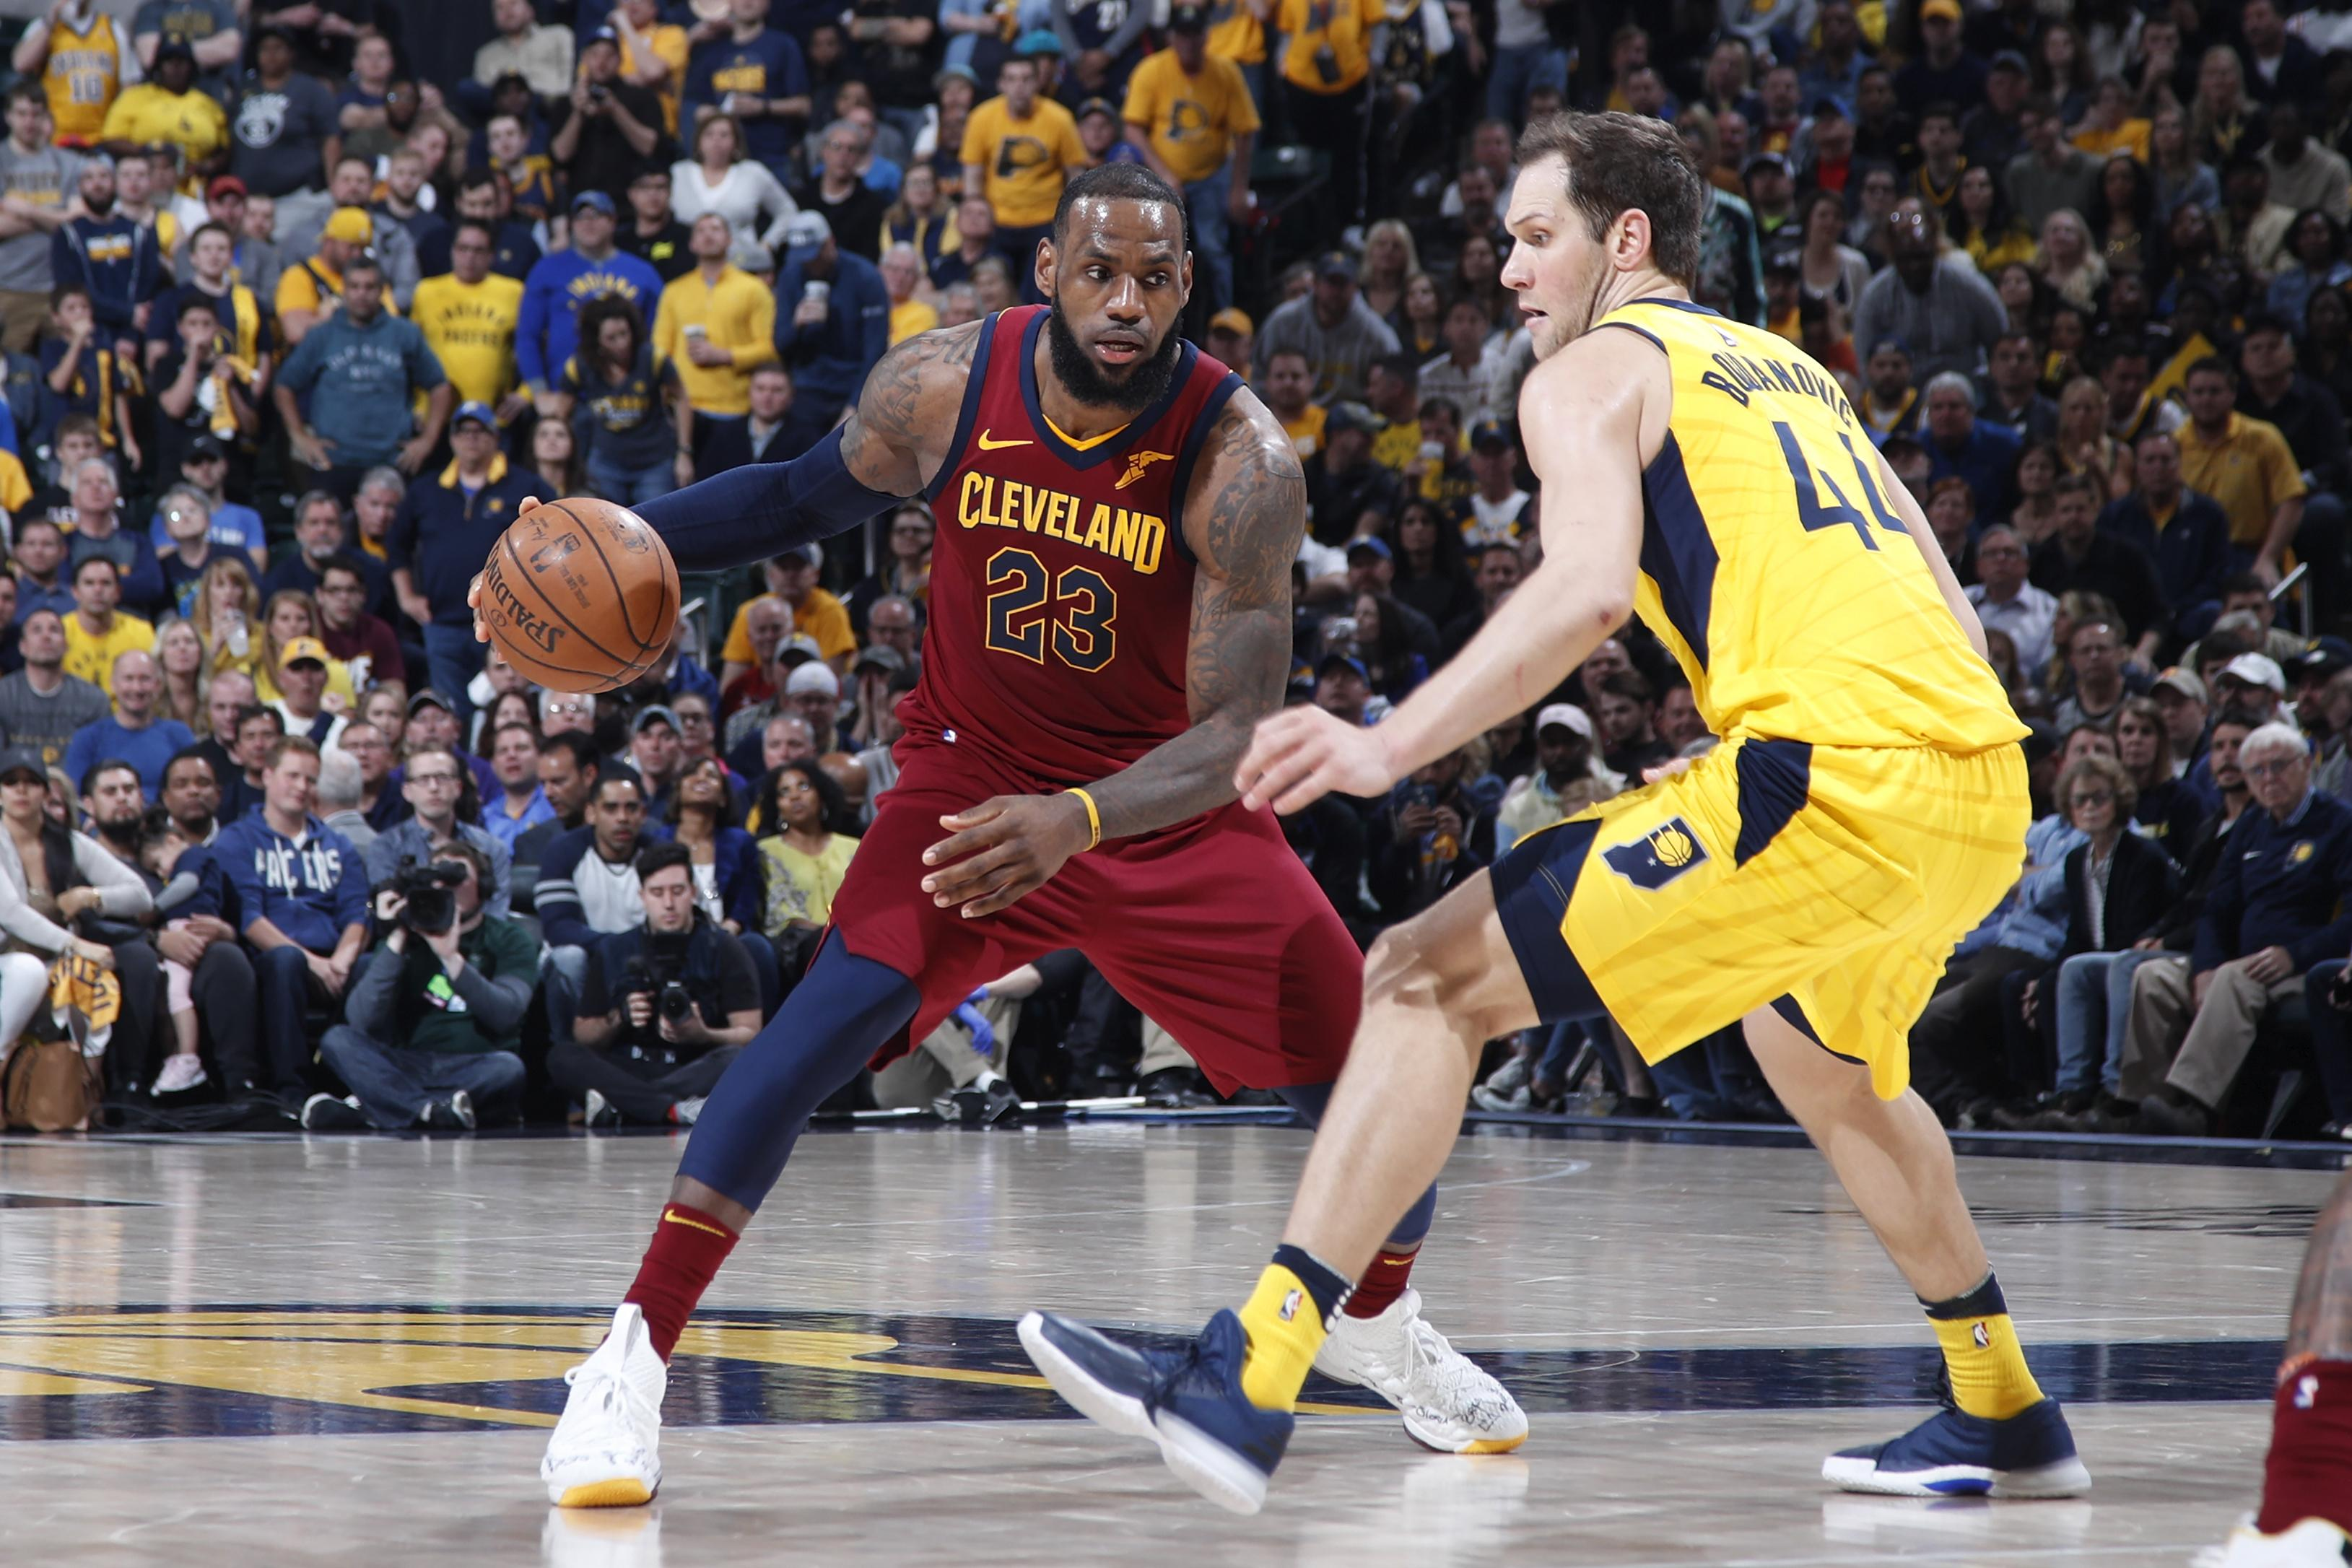 NBA Playoffs 2018: Cleveland Cavaliers vs. Indiana Pacers Game 5 live stream